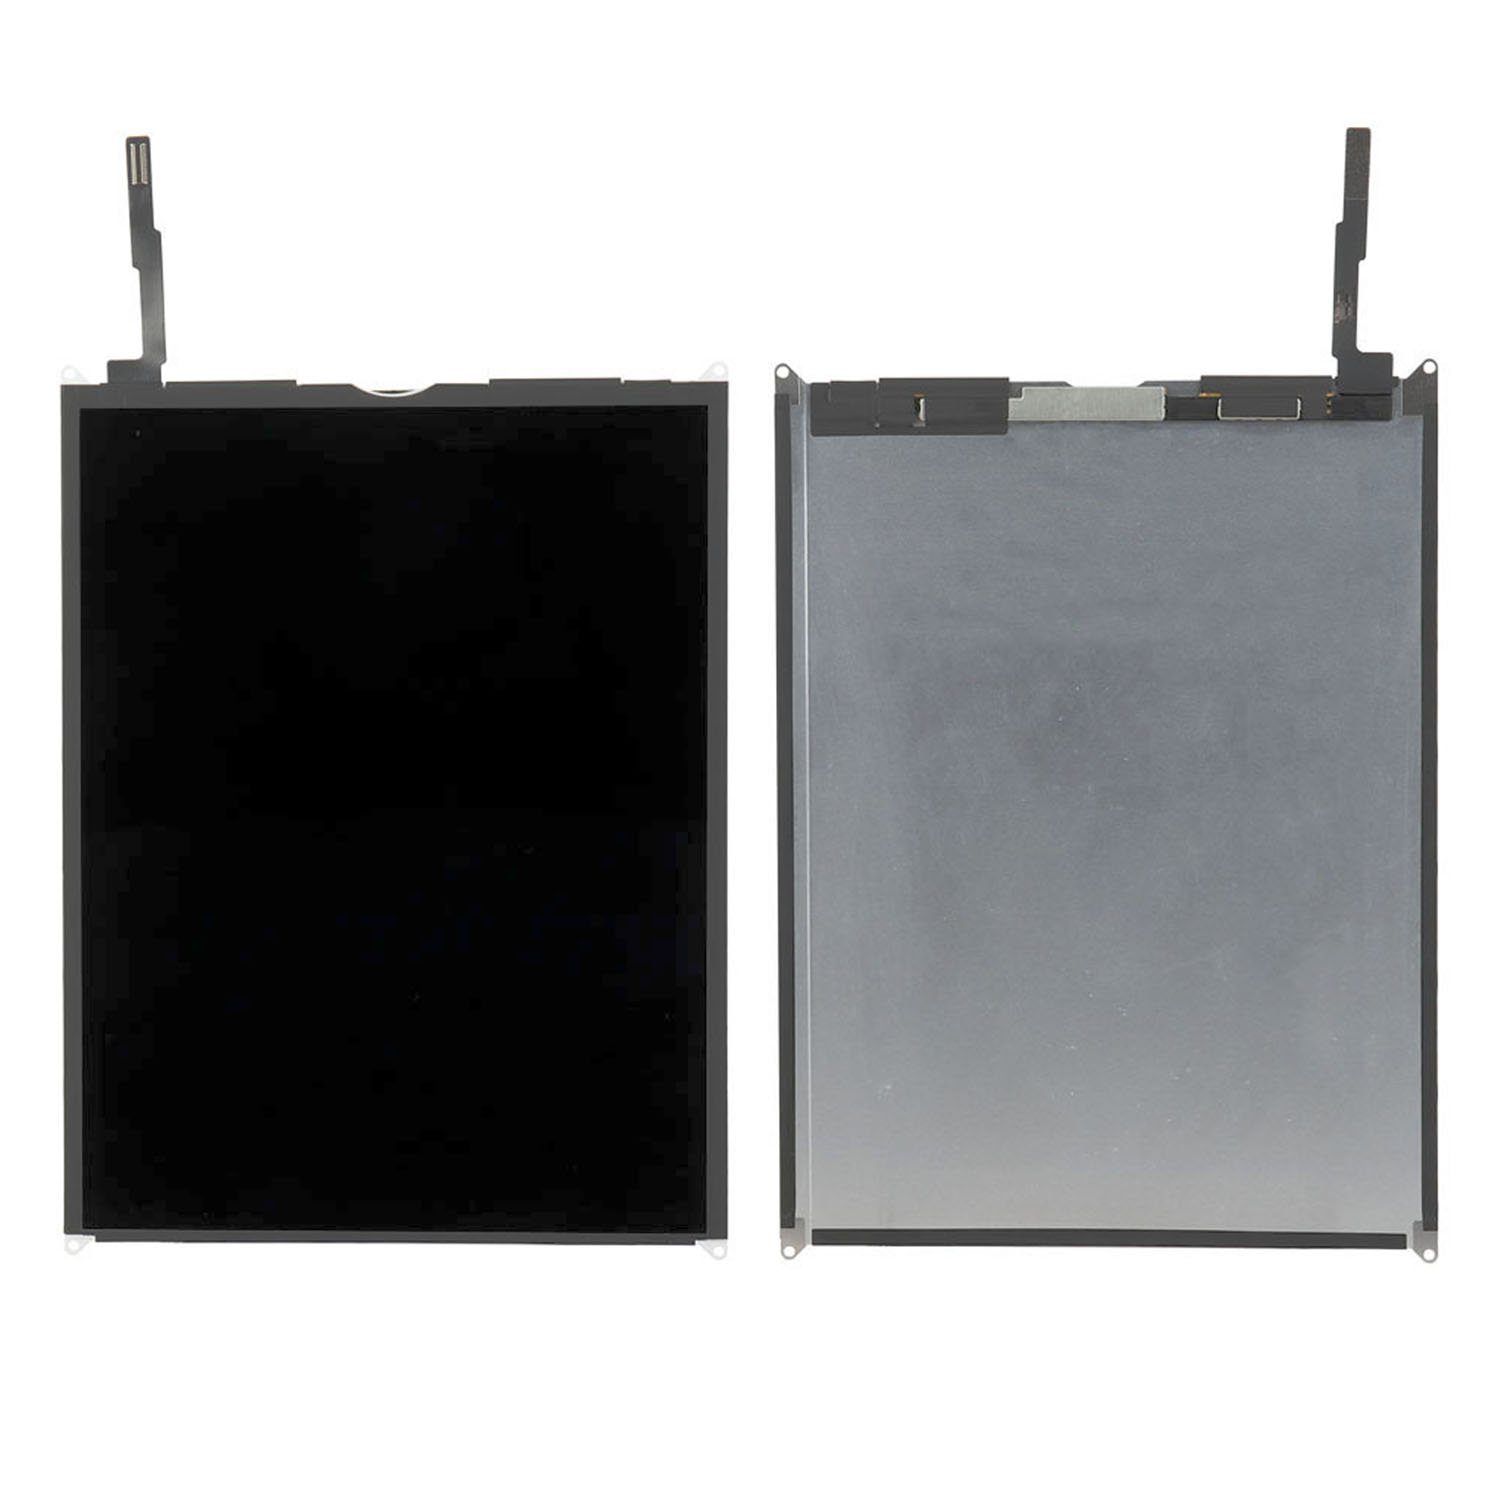 New Replacement LCD Display Screen for iPad Air 5 Model A1474 A1475 +Free Tooling + Delivery From U.S Warehouse Direct by ZCTECH